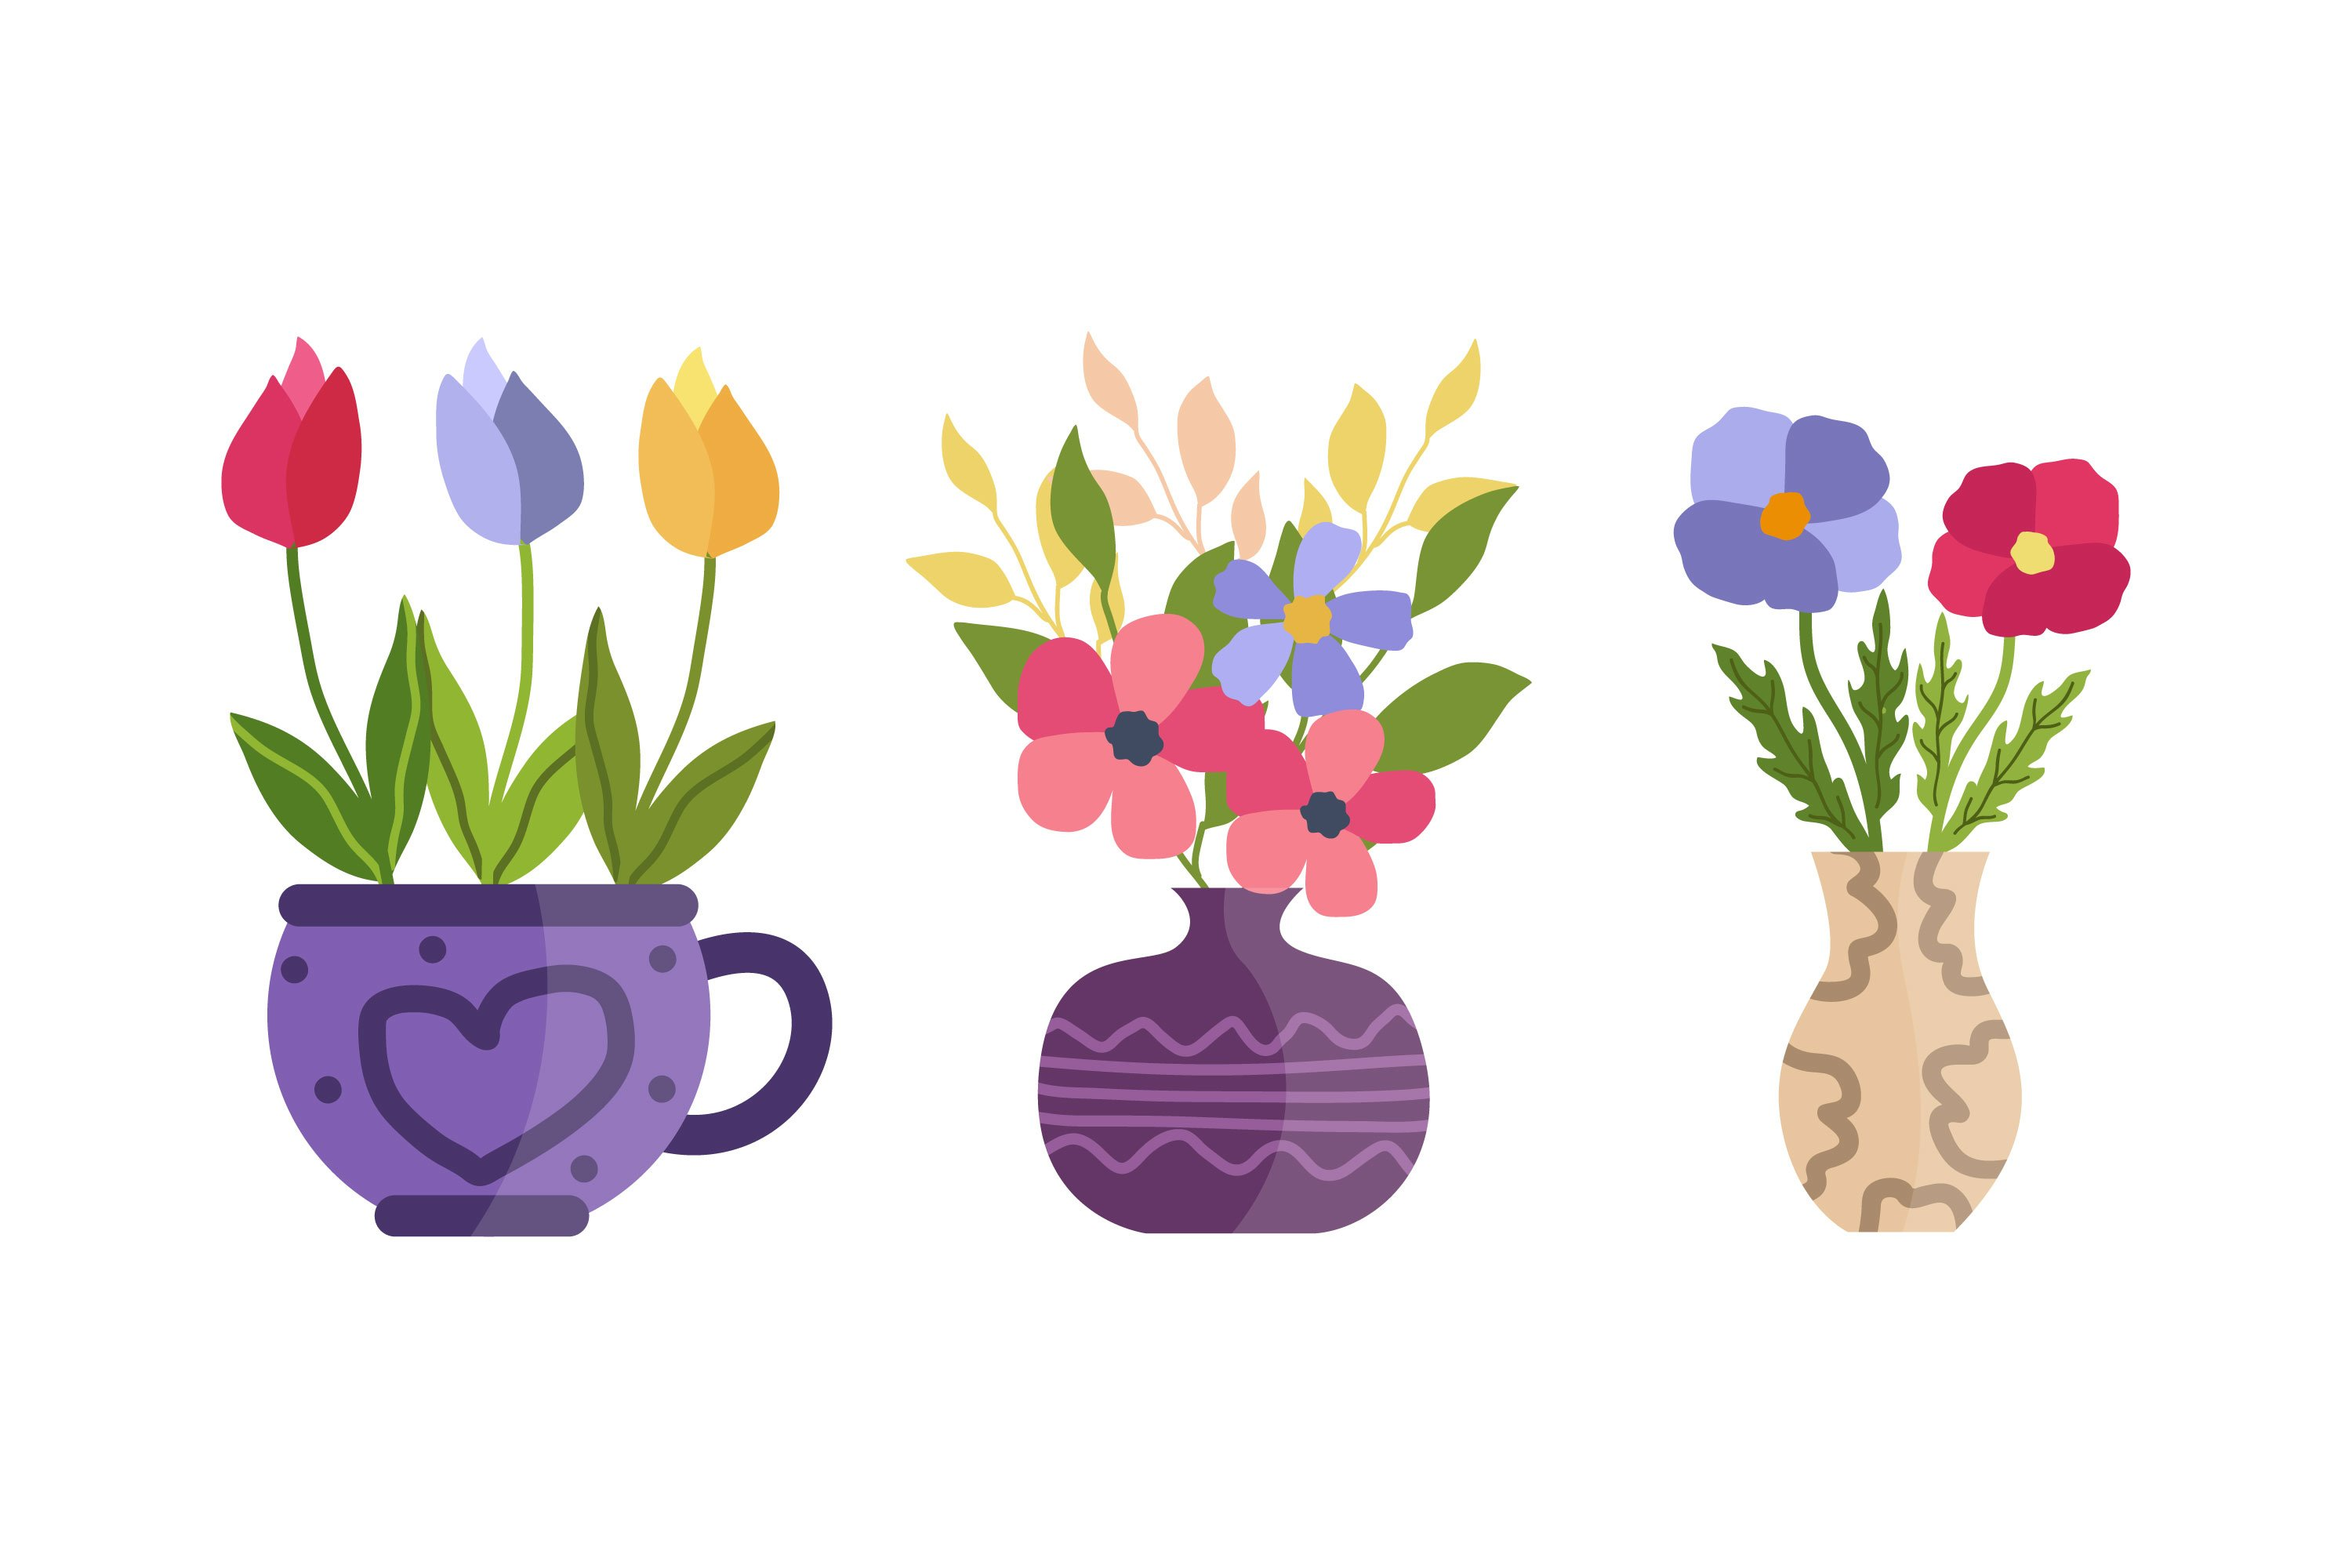 Potted Plant Illustrations example image 1